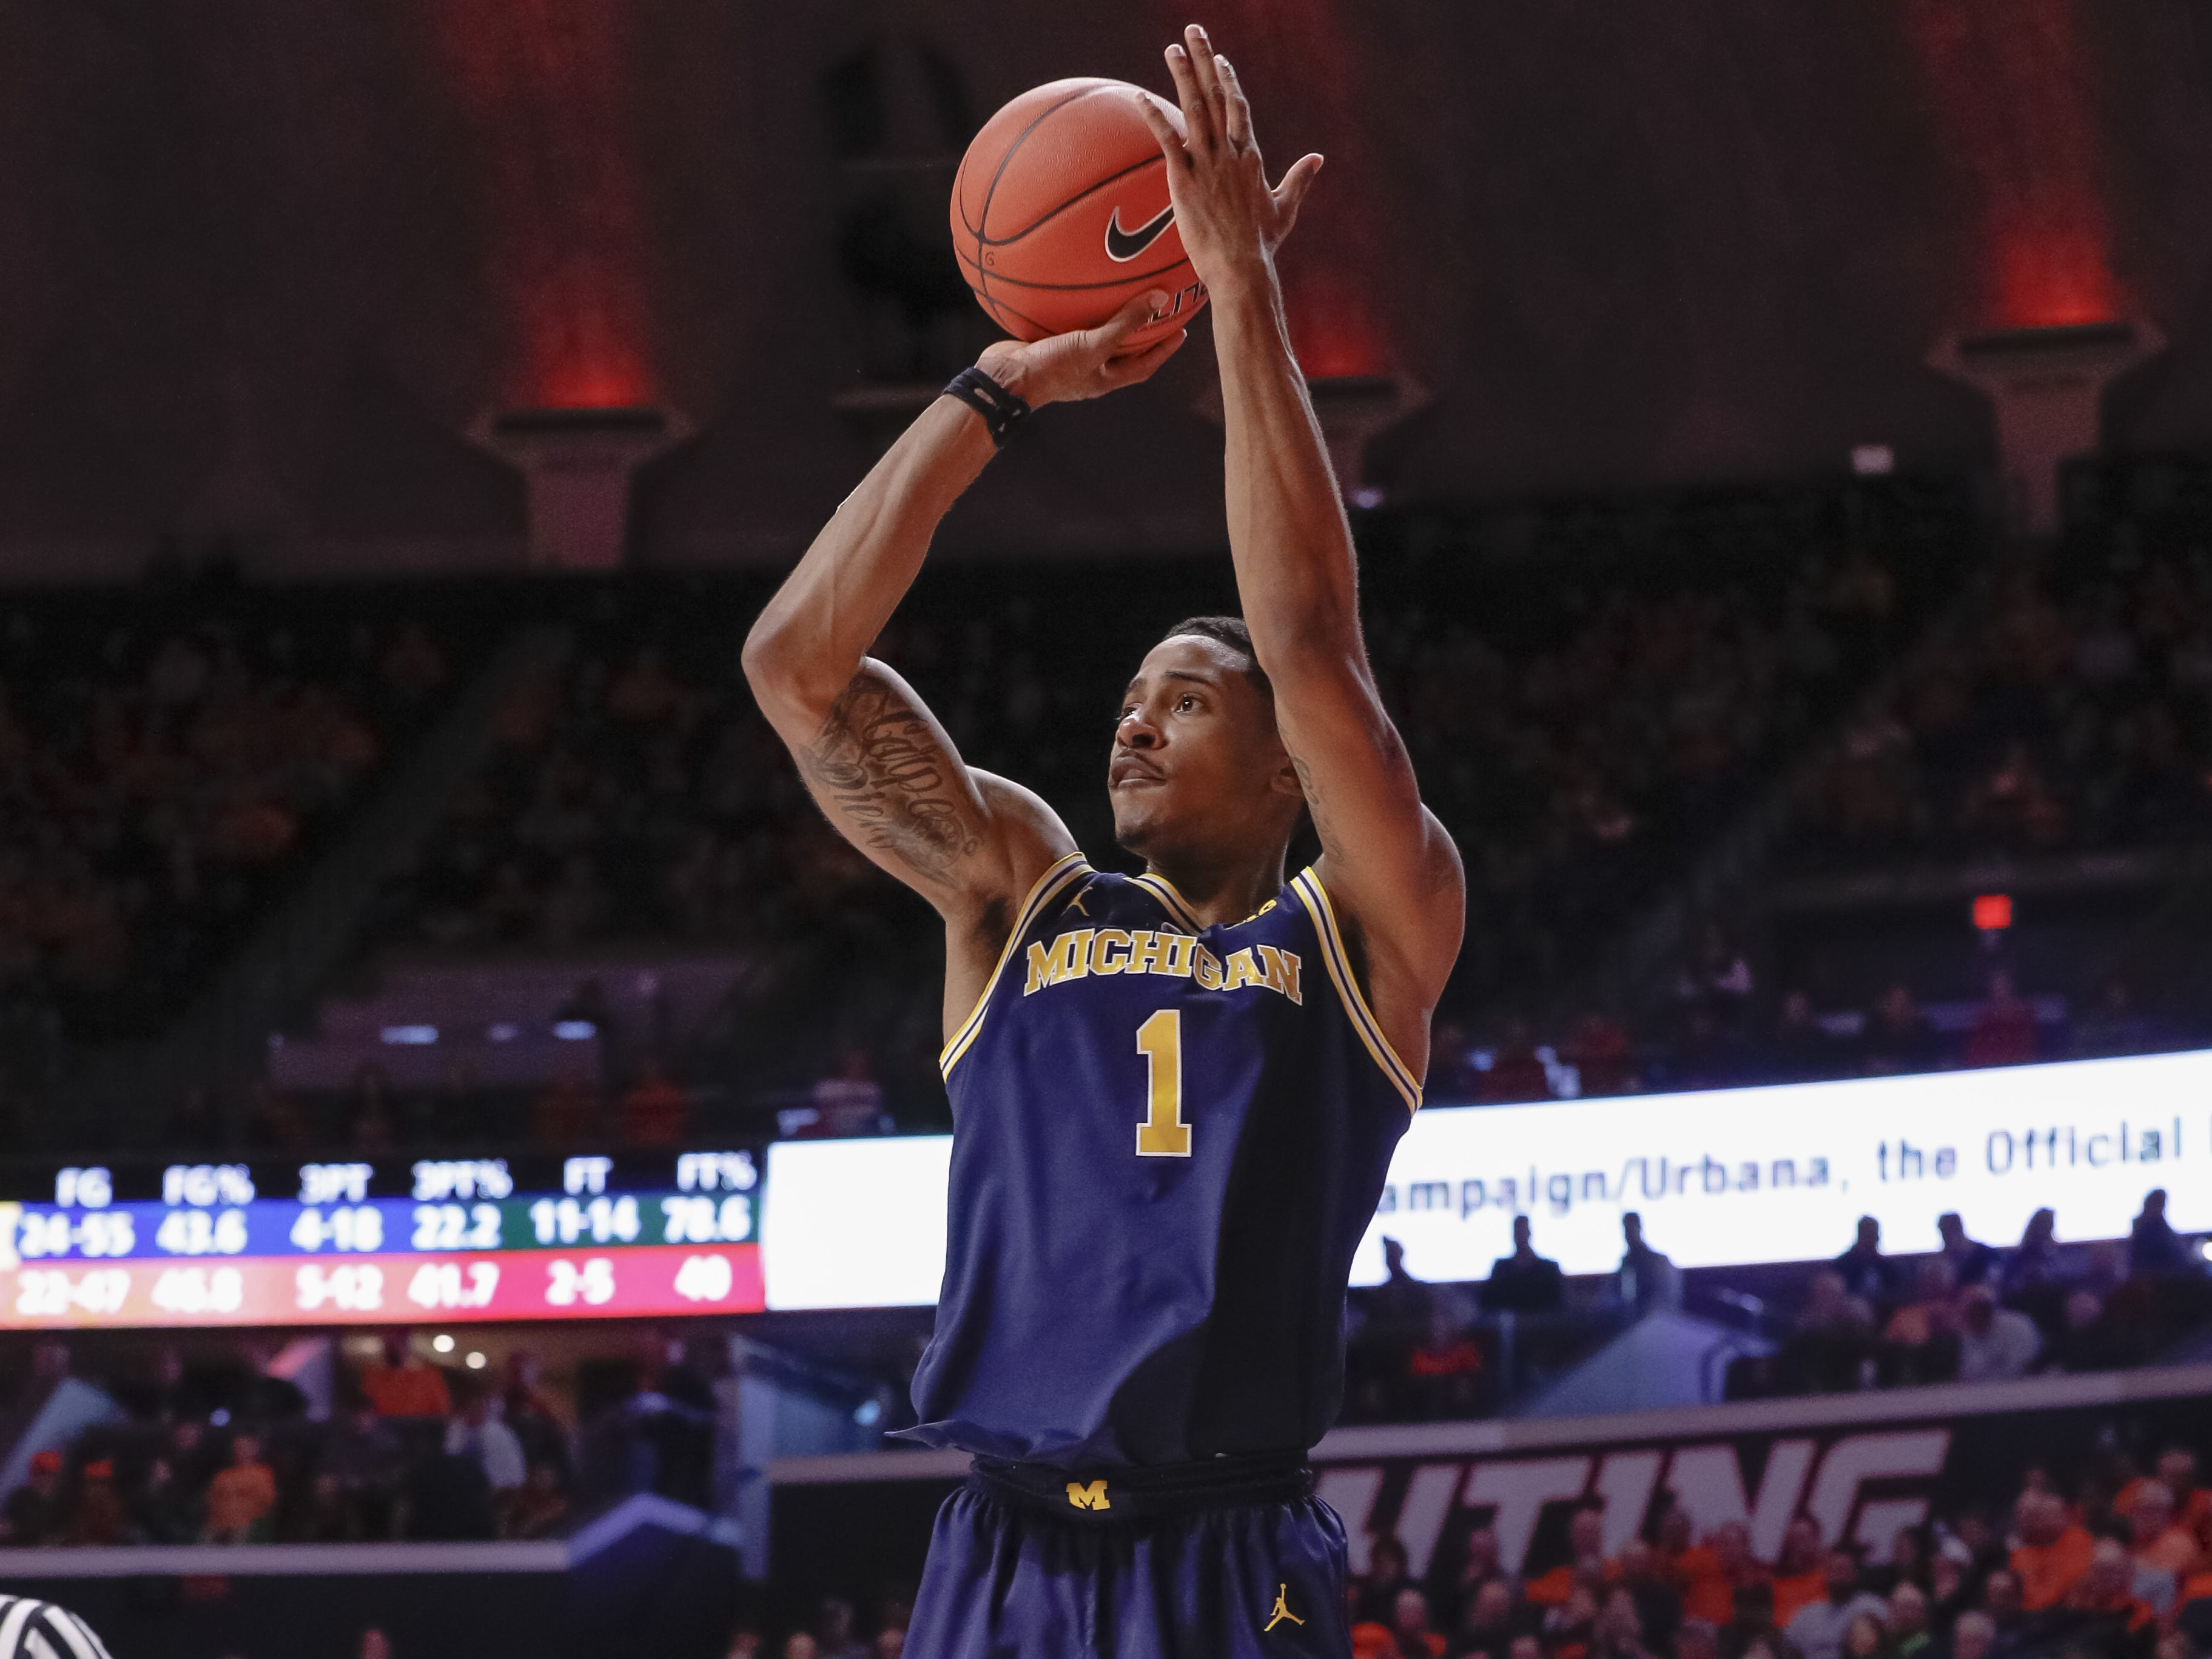 Michigan guard Charles Matthews shoots a jump shot during the second half of U-M's 79-69 win on Thursday, Jan. 10, 2019, in Champaign, Ill.